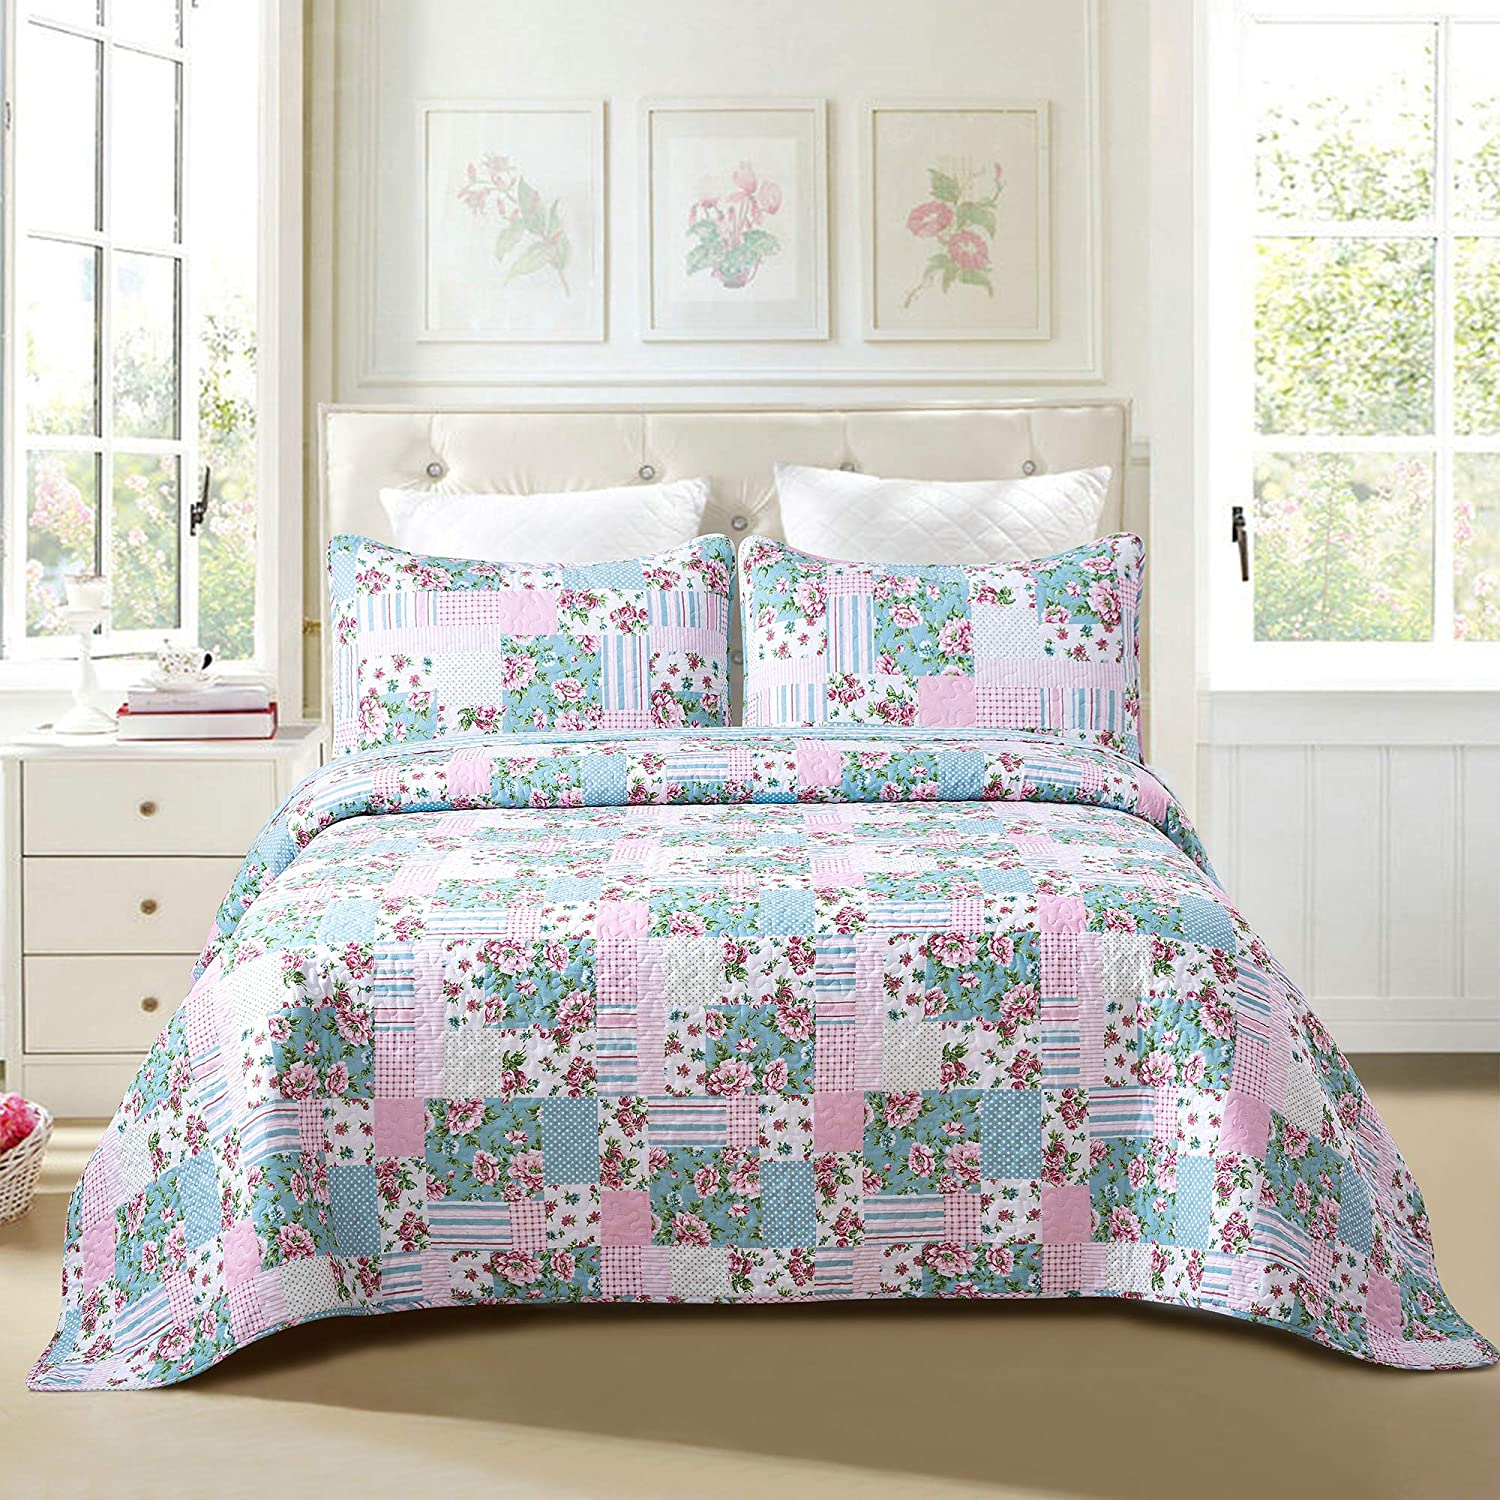 with 2 Shams Machine Washable All-Season Bedspread Coverlet Sole /& Lane Budding Beauty 3-Piece 100/% Cotton Lightweight Printed Quilt Set King